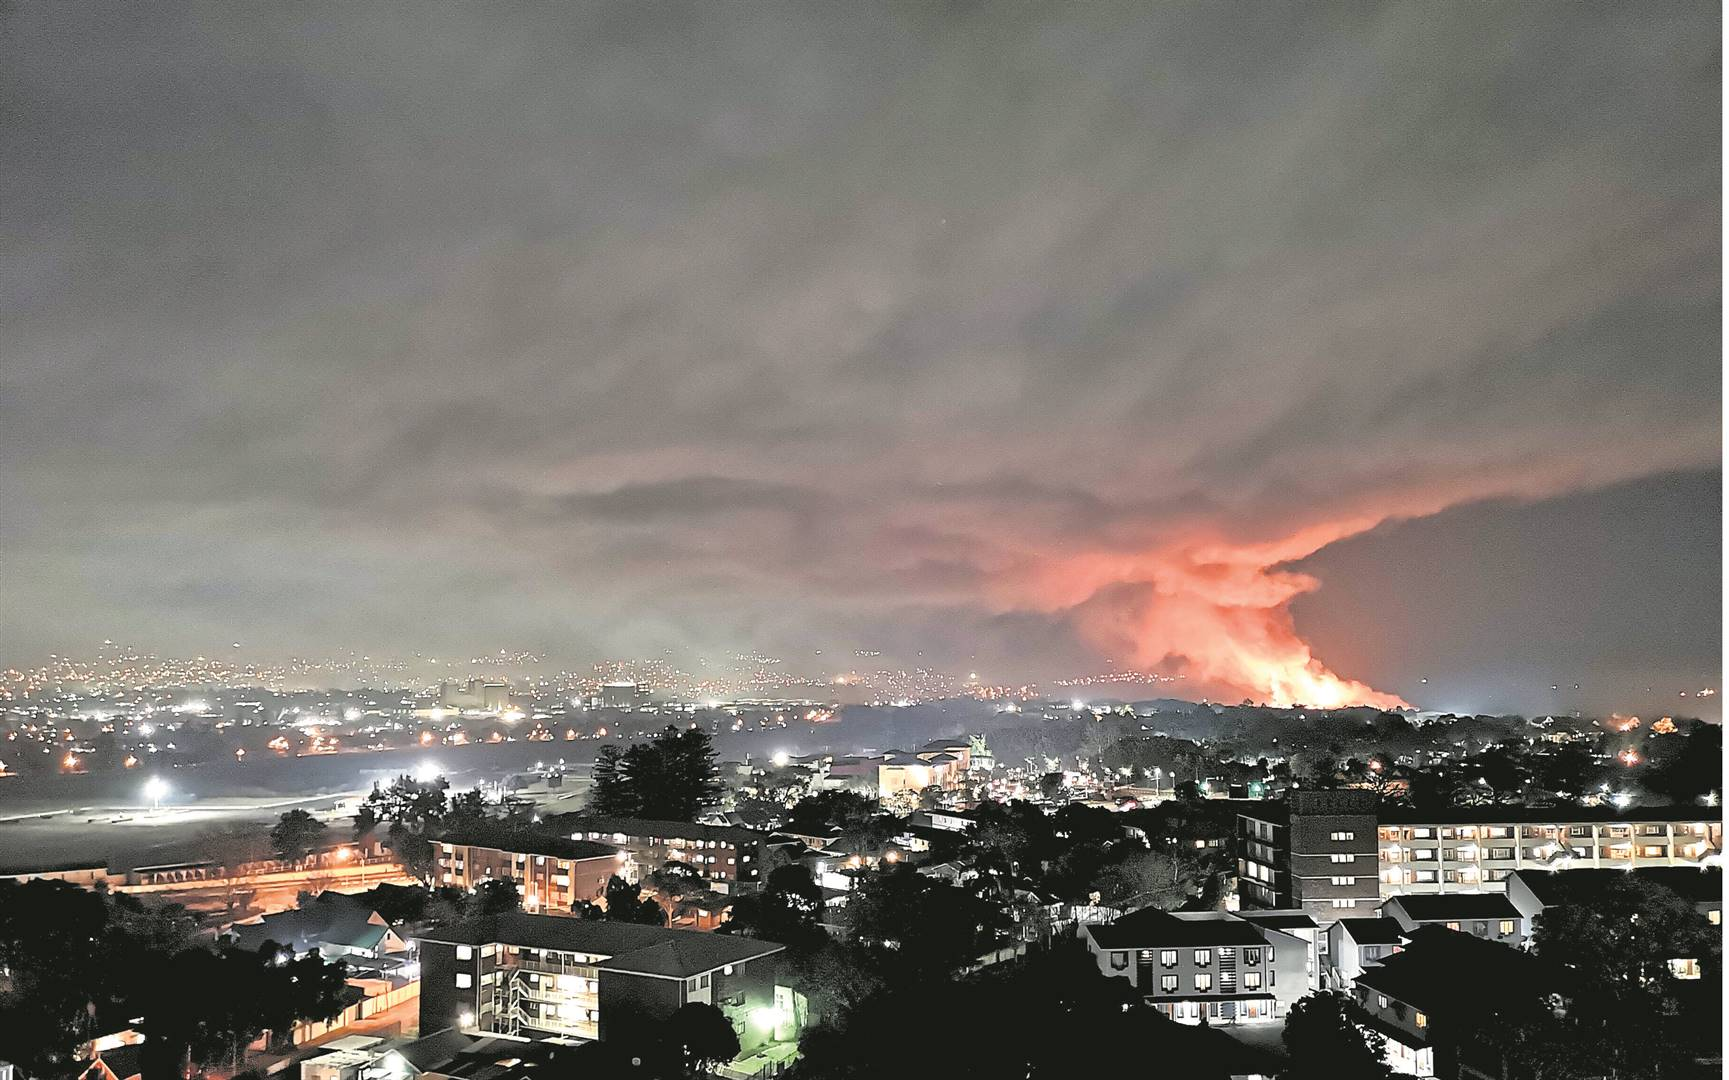 Meleney Naik took this photograph of the New England Road landfill site still well ablaze last night, from the Nedbank Plaza highrise in Scottsville. PHOTO: Meleney Naik